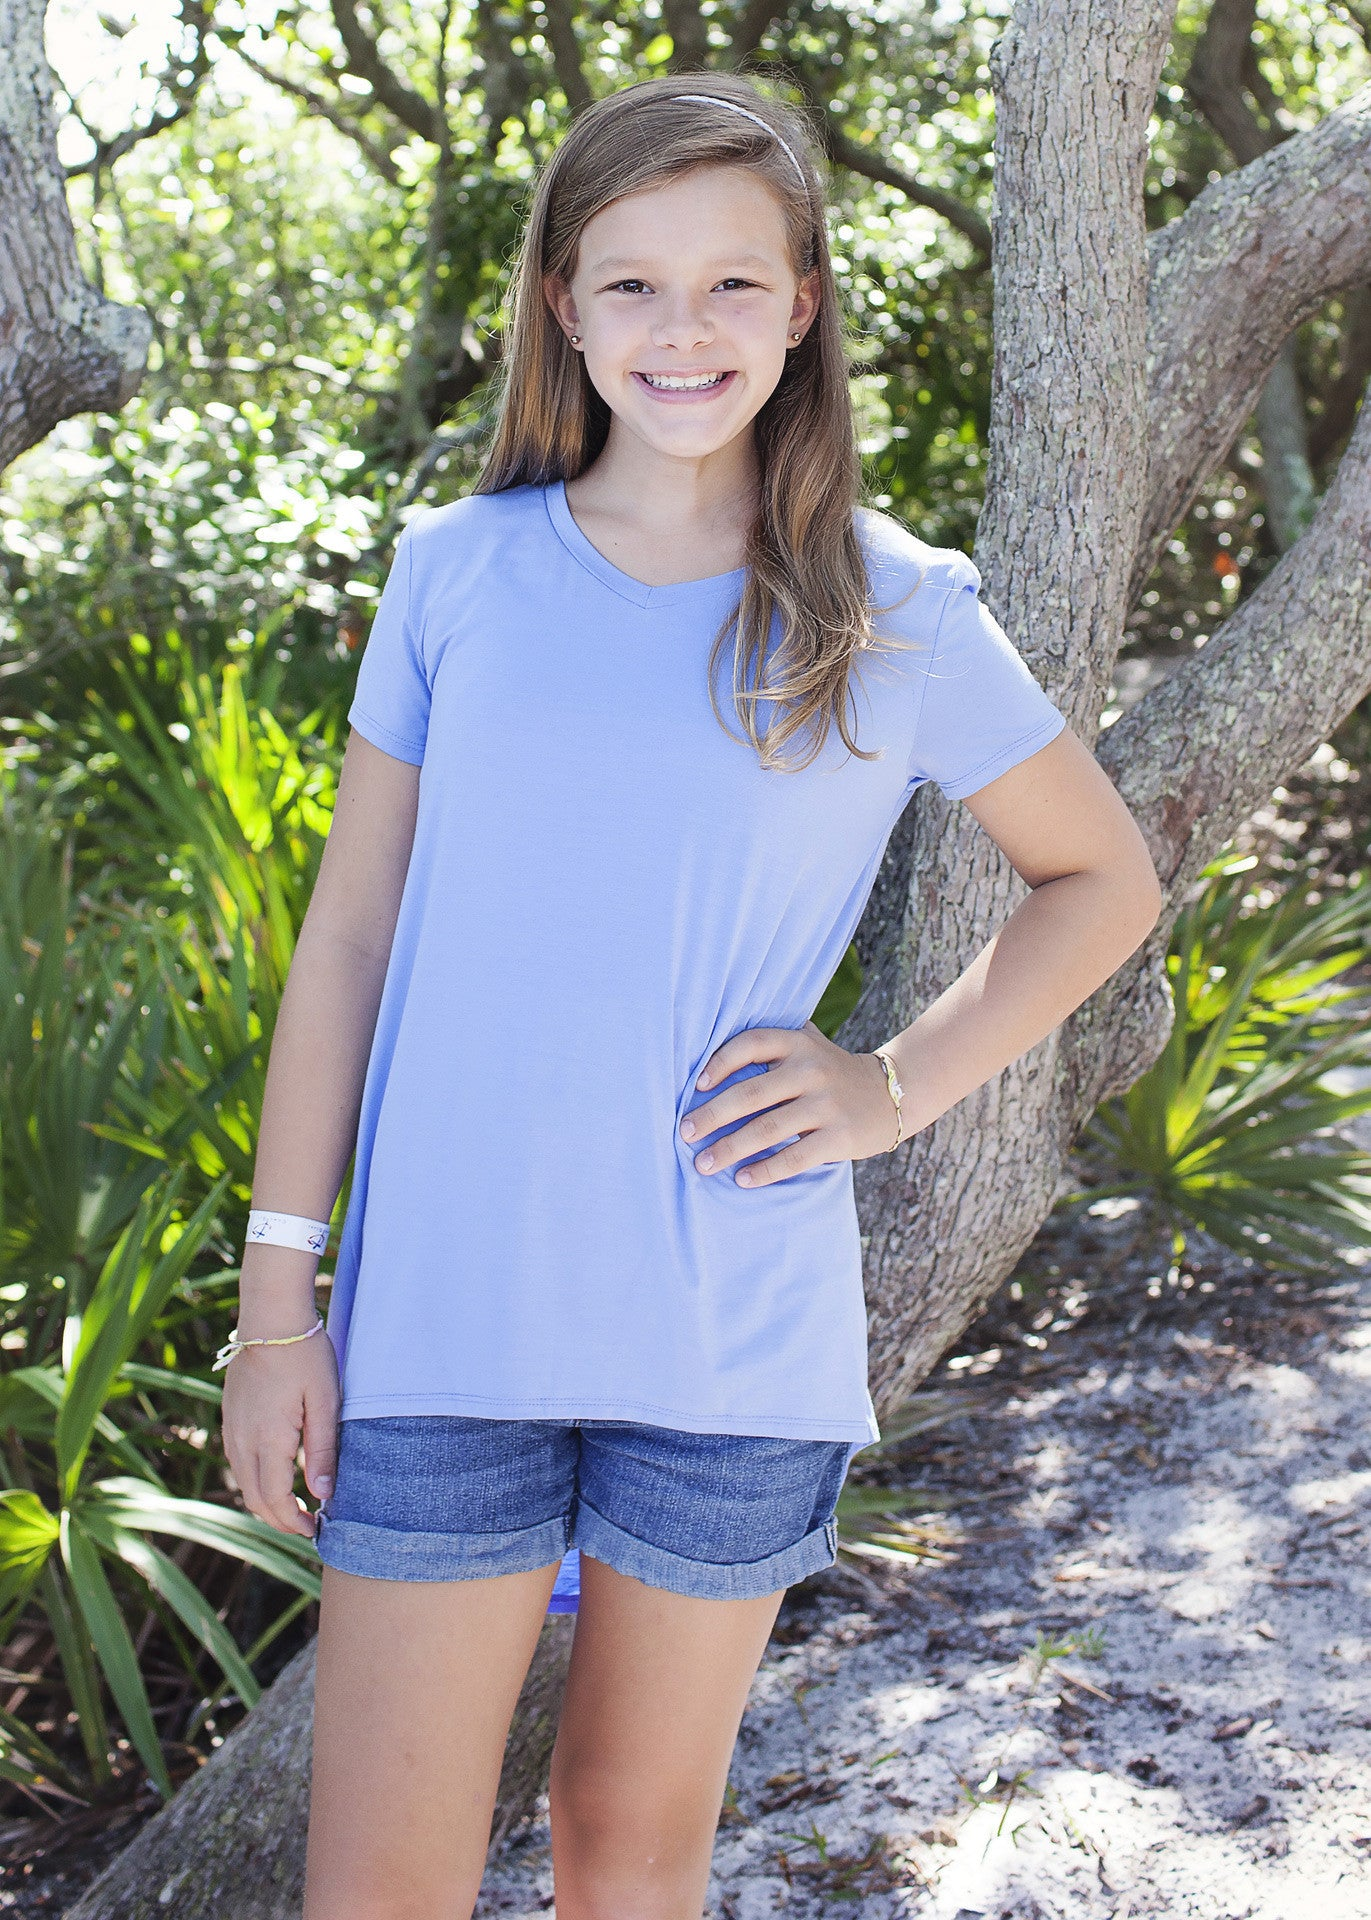 Kids High Low Top - Piko Clearance Center - 9